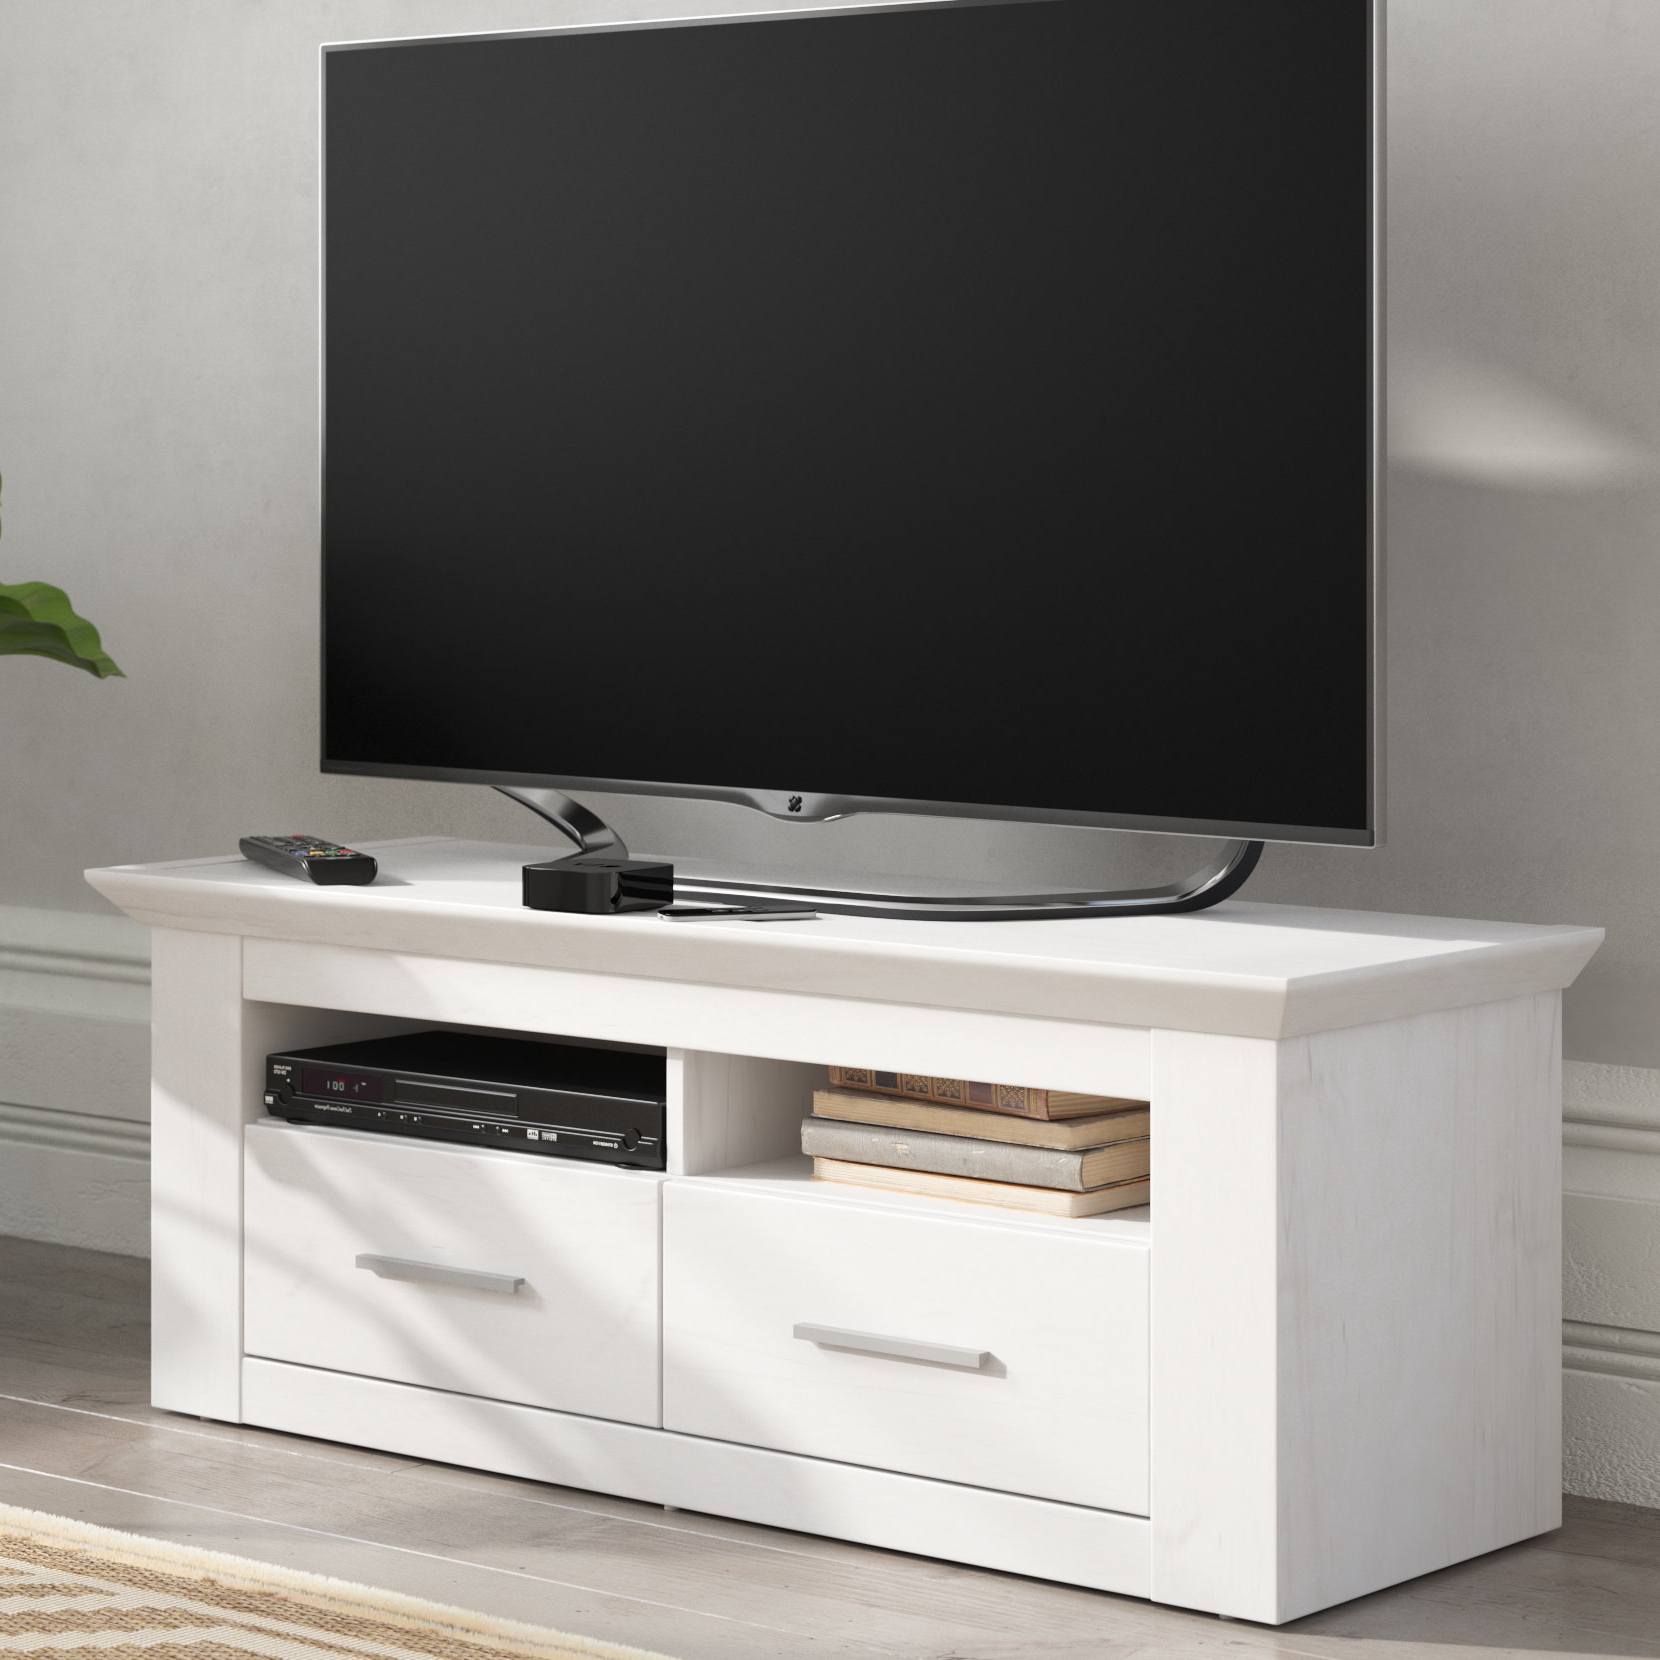 Most Recently Released Hokku Tv Stands In Hokku Designs Tv Stands & Entertainment Units You'll Love (View 11 of 20)